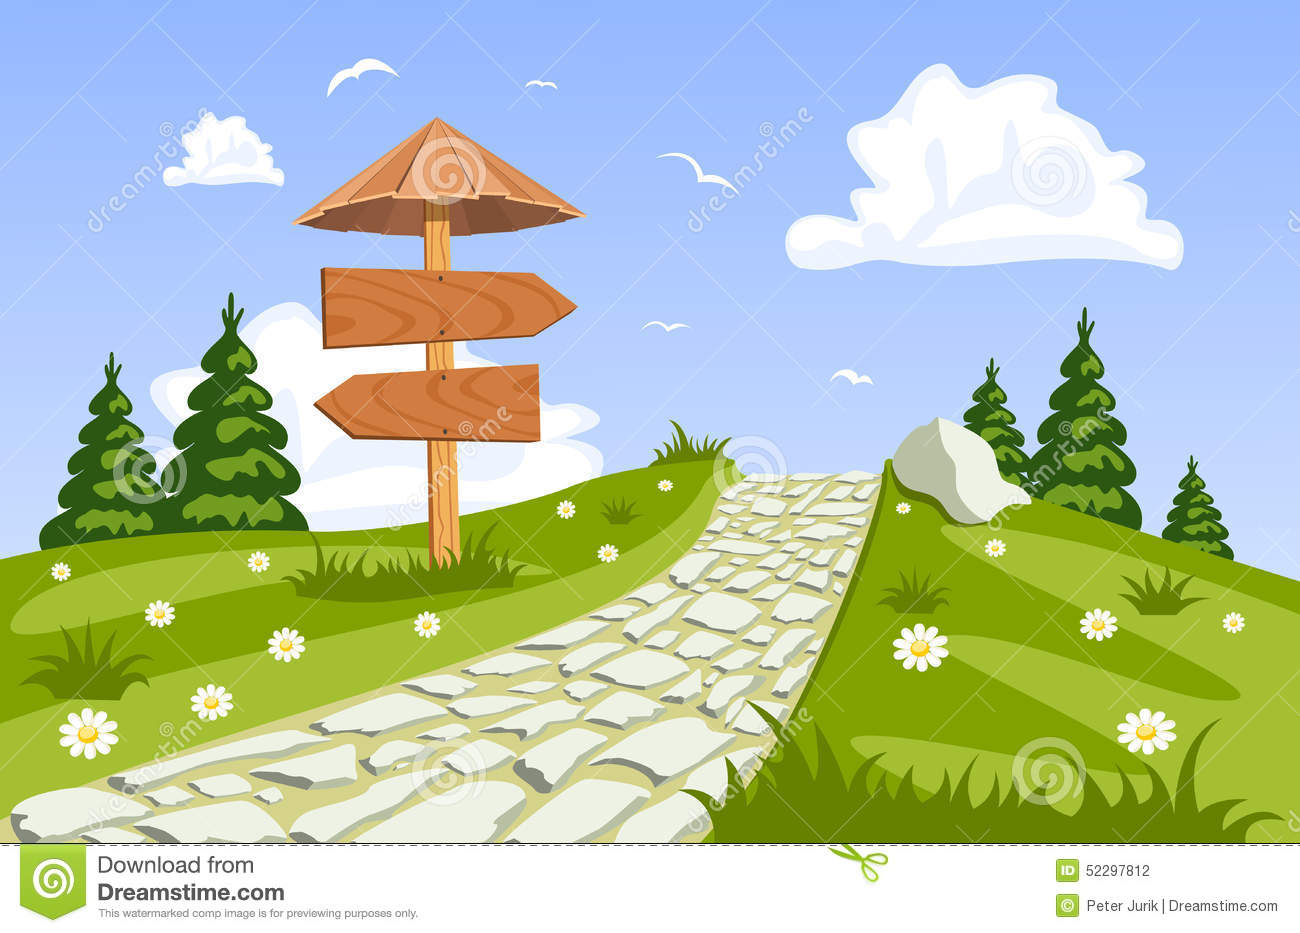 Walkway clipart RoyaltyFree Illustrations Clipart clipart Walkway